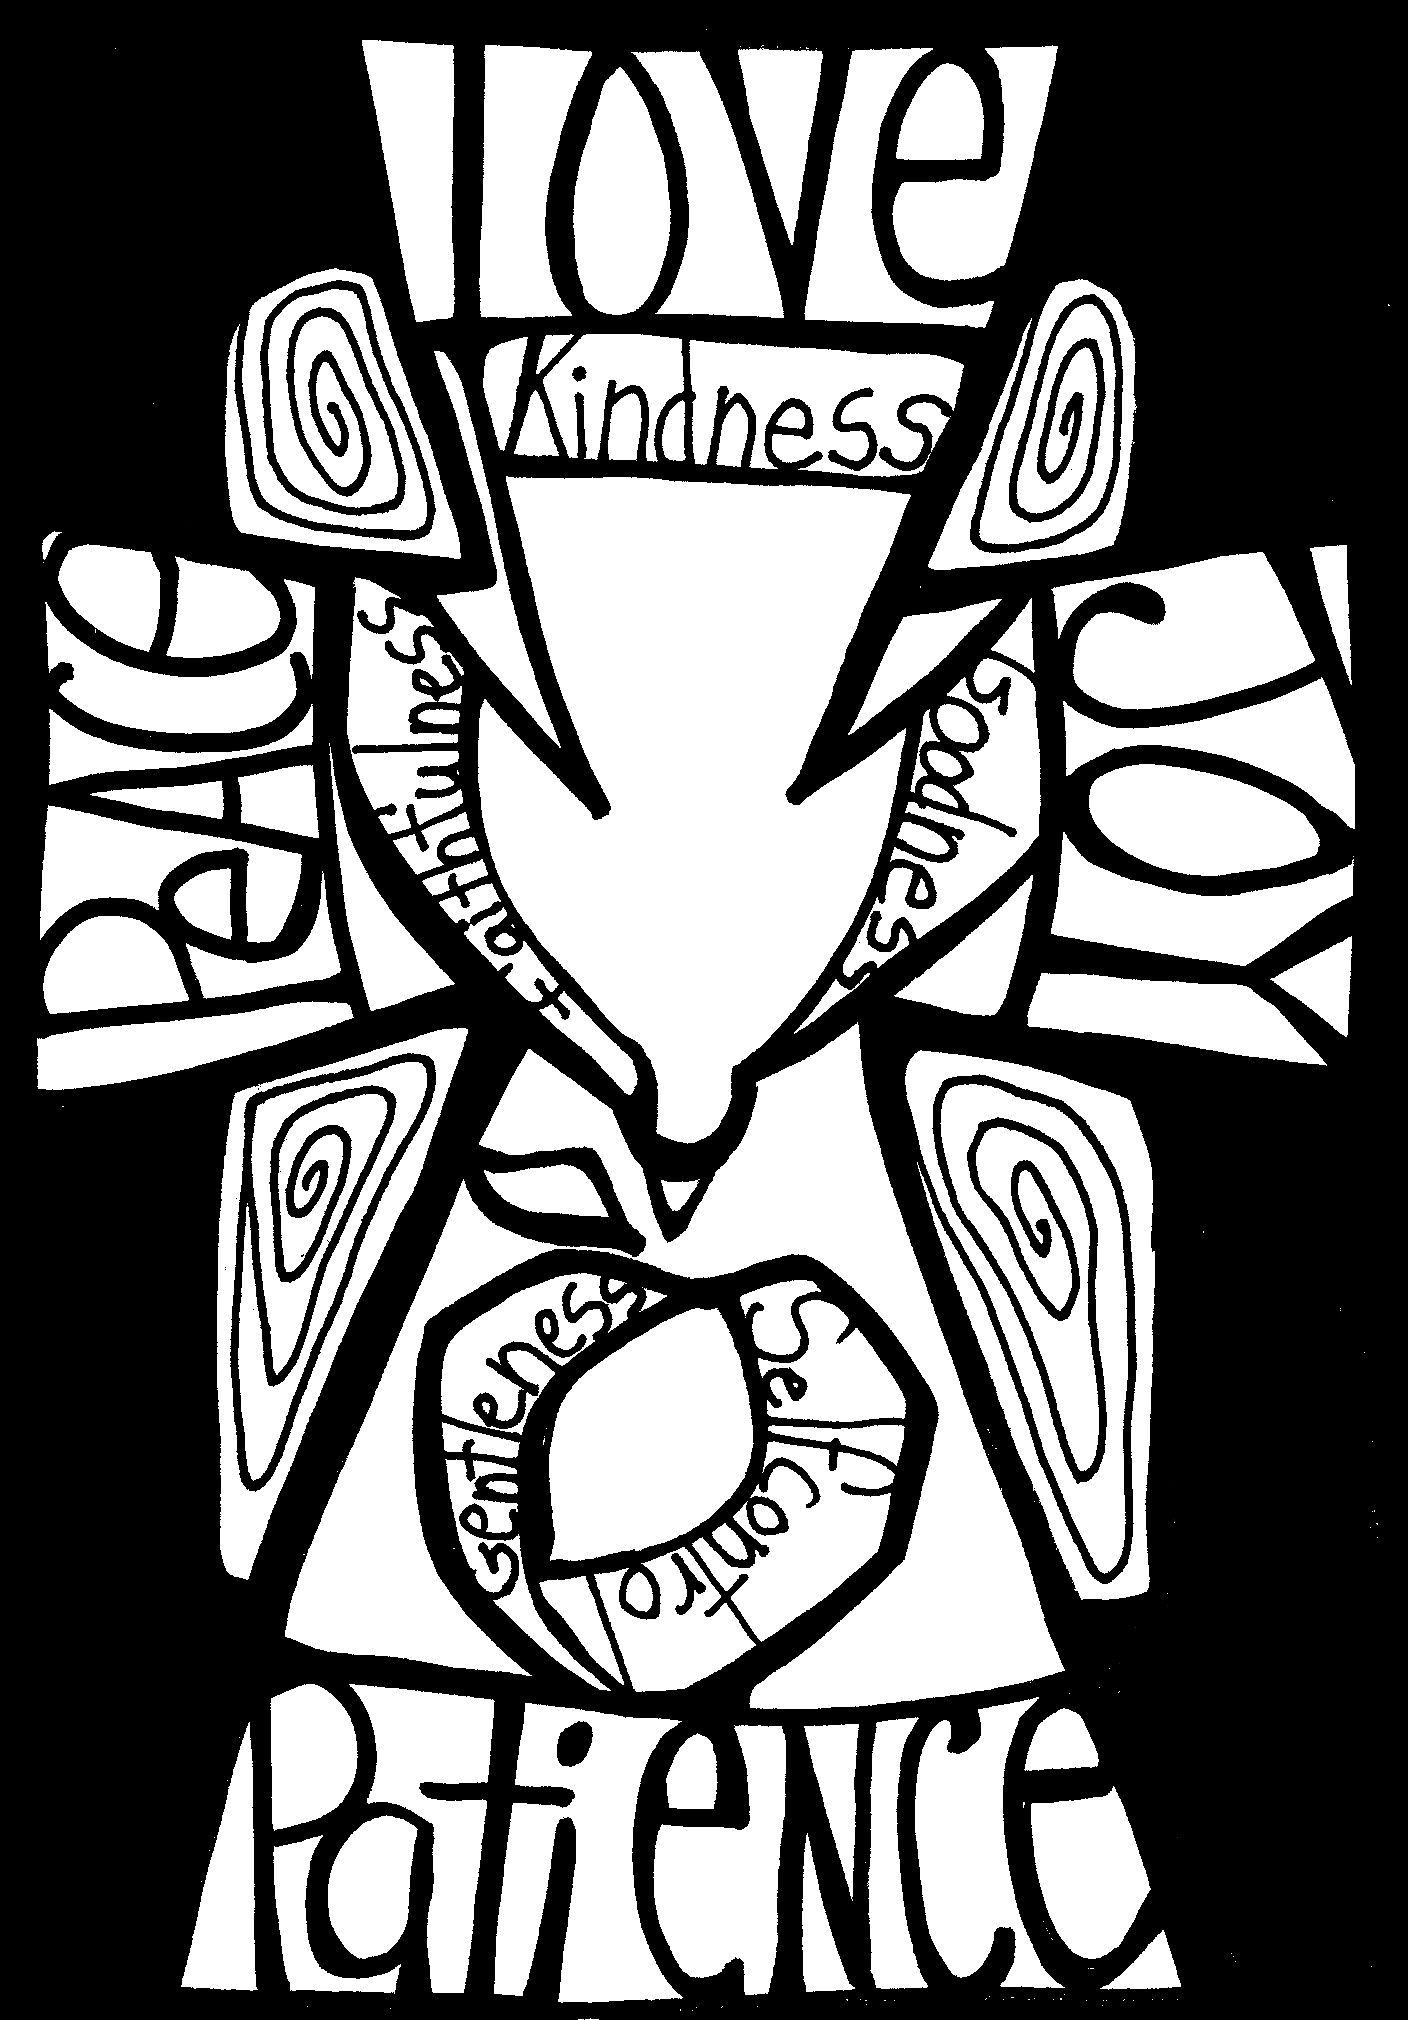 Childrens coloring pages for the fruits of the spirit - 25 Best Fruits Of Holy Spirit Ideas On Pinterest Fruit Spirit Holy Spirit And Holy Spirit Scriptures